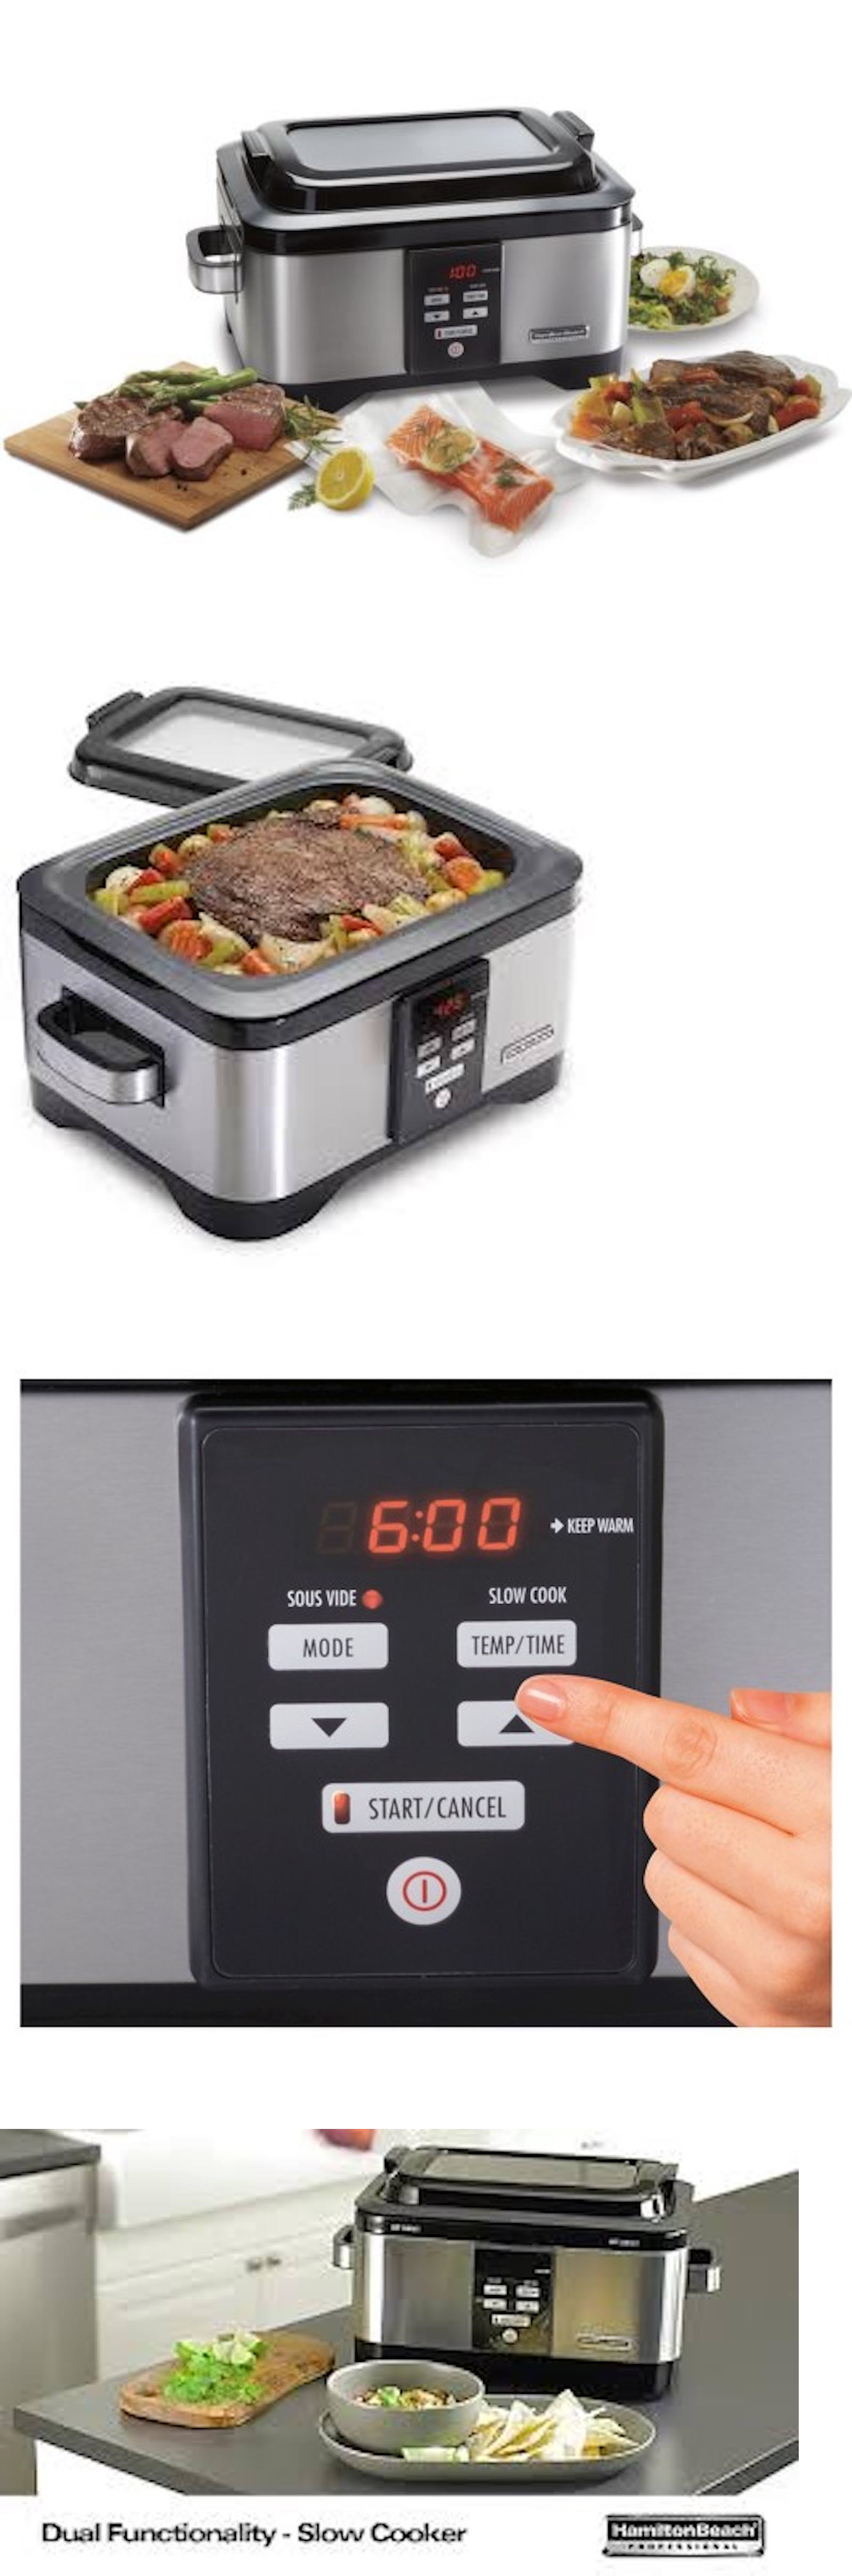 Uncategorized Ebay Kitchen Appliances appliances hamilton beach 33970 professional sous vide slow cooker 6 quart stainless new